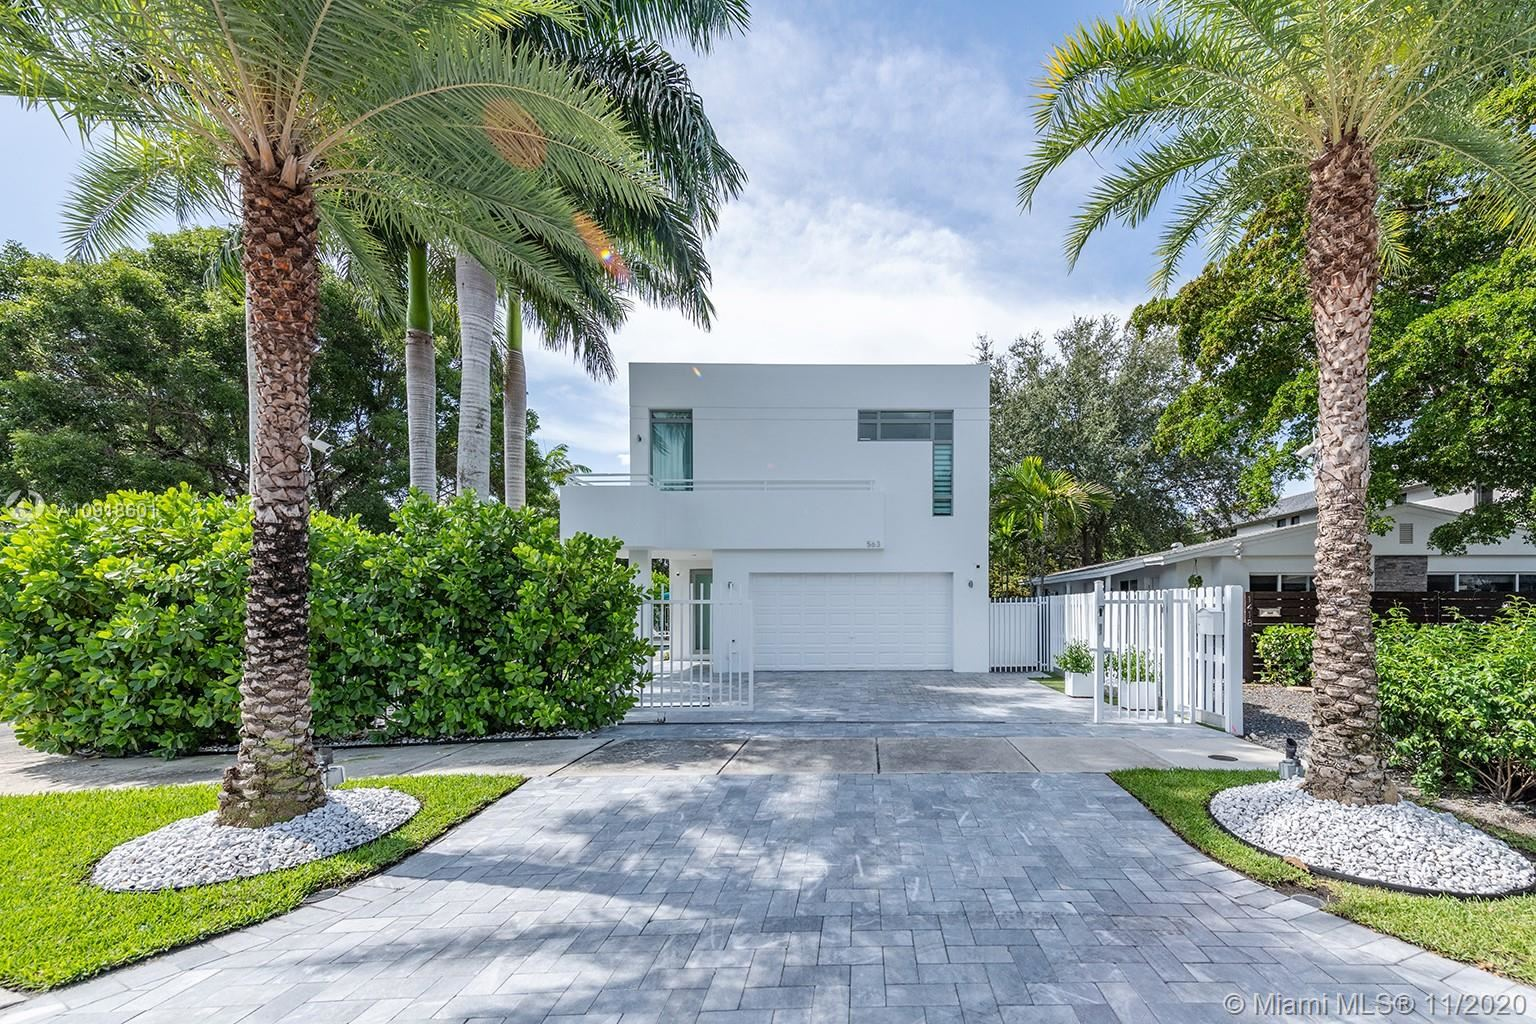 563 NE 15th Ave, Fort Lauderdale, FL 33301 - #: A10918601